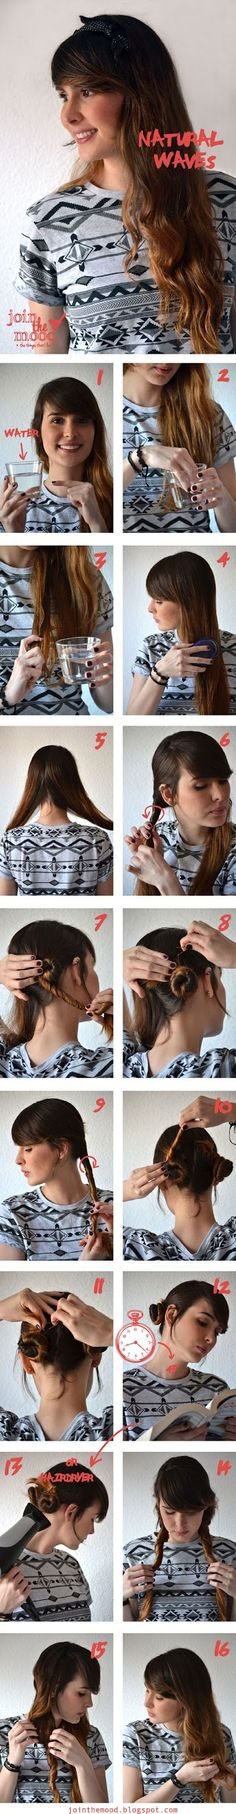 ~ DIY Make a Natural Waves For Your Hair ~